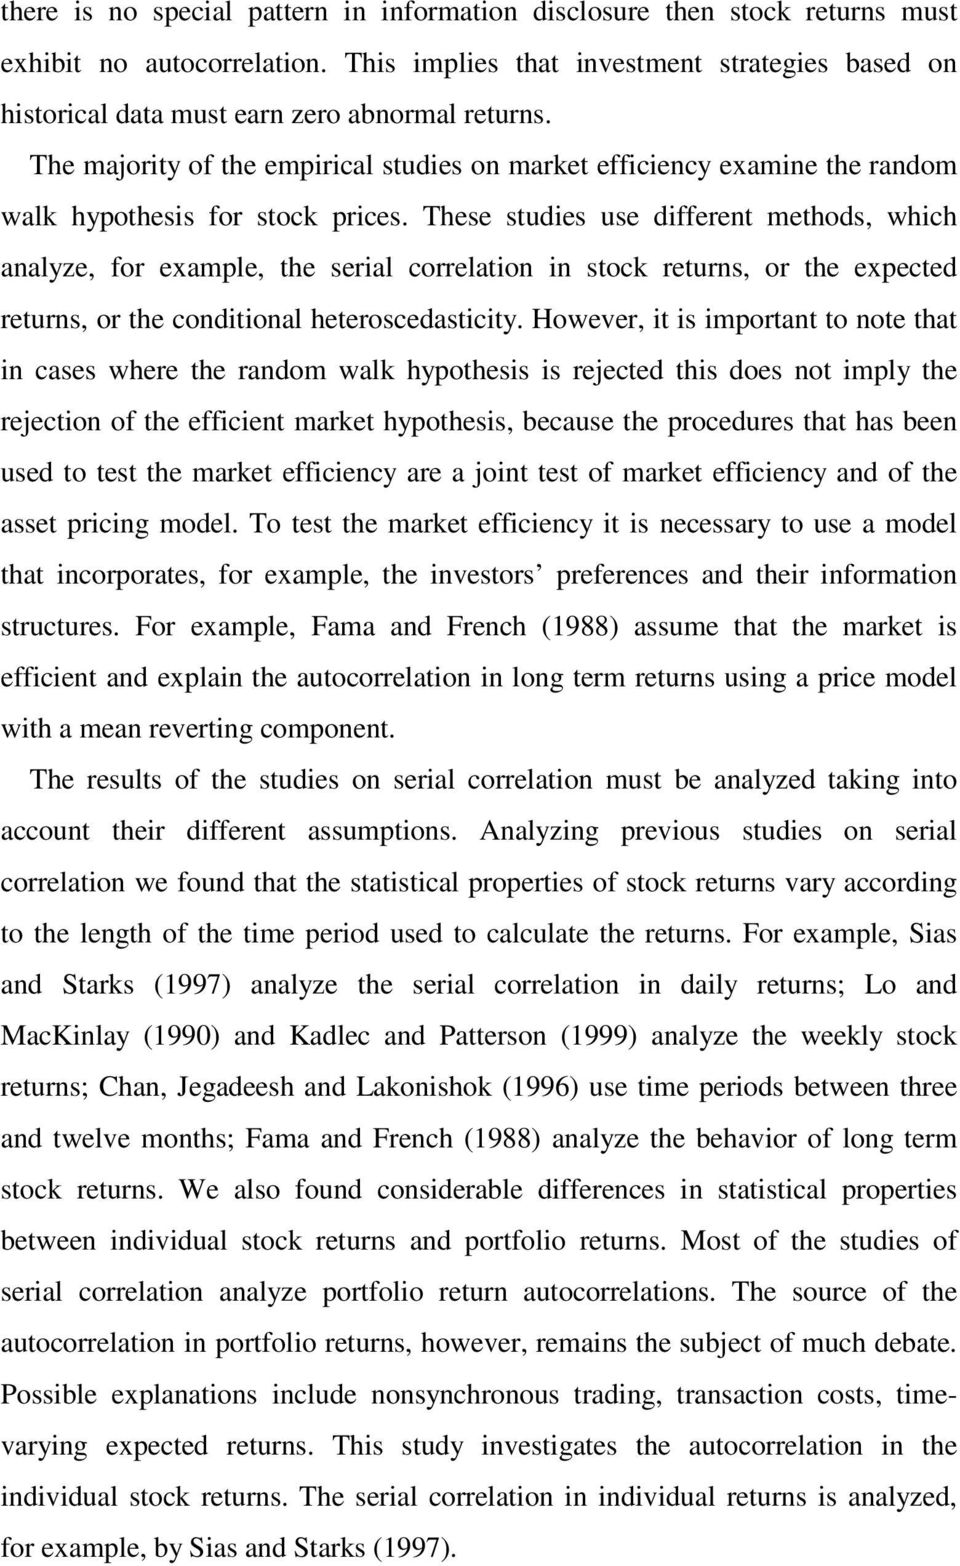 he majority of the empirical studies on market efficiency examine the random walk hypothesis for stock prices.